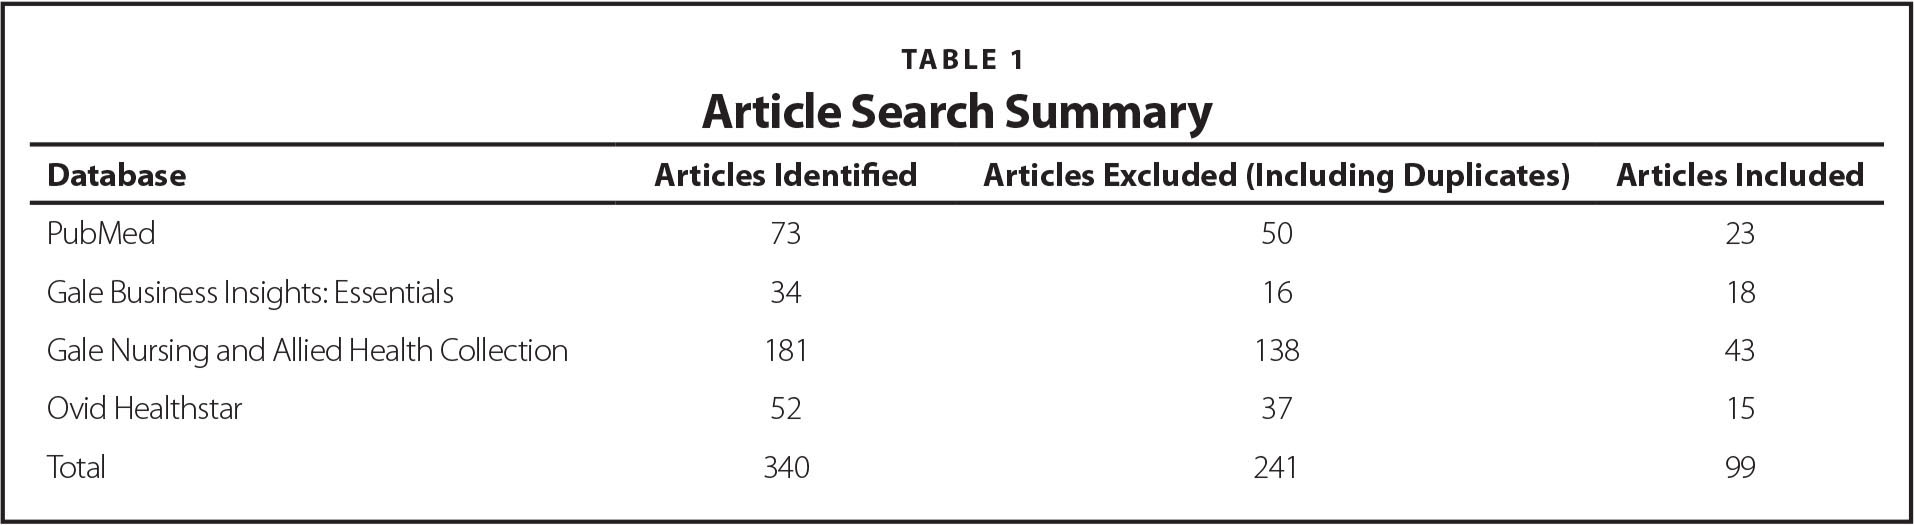 Article Search Summary